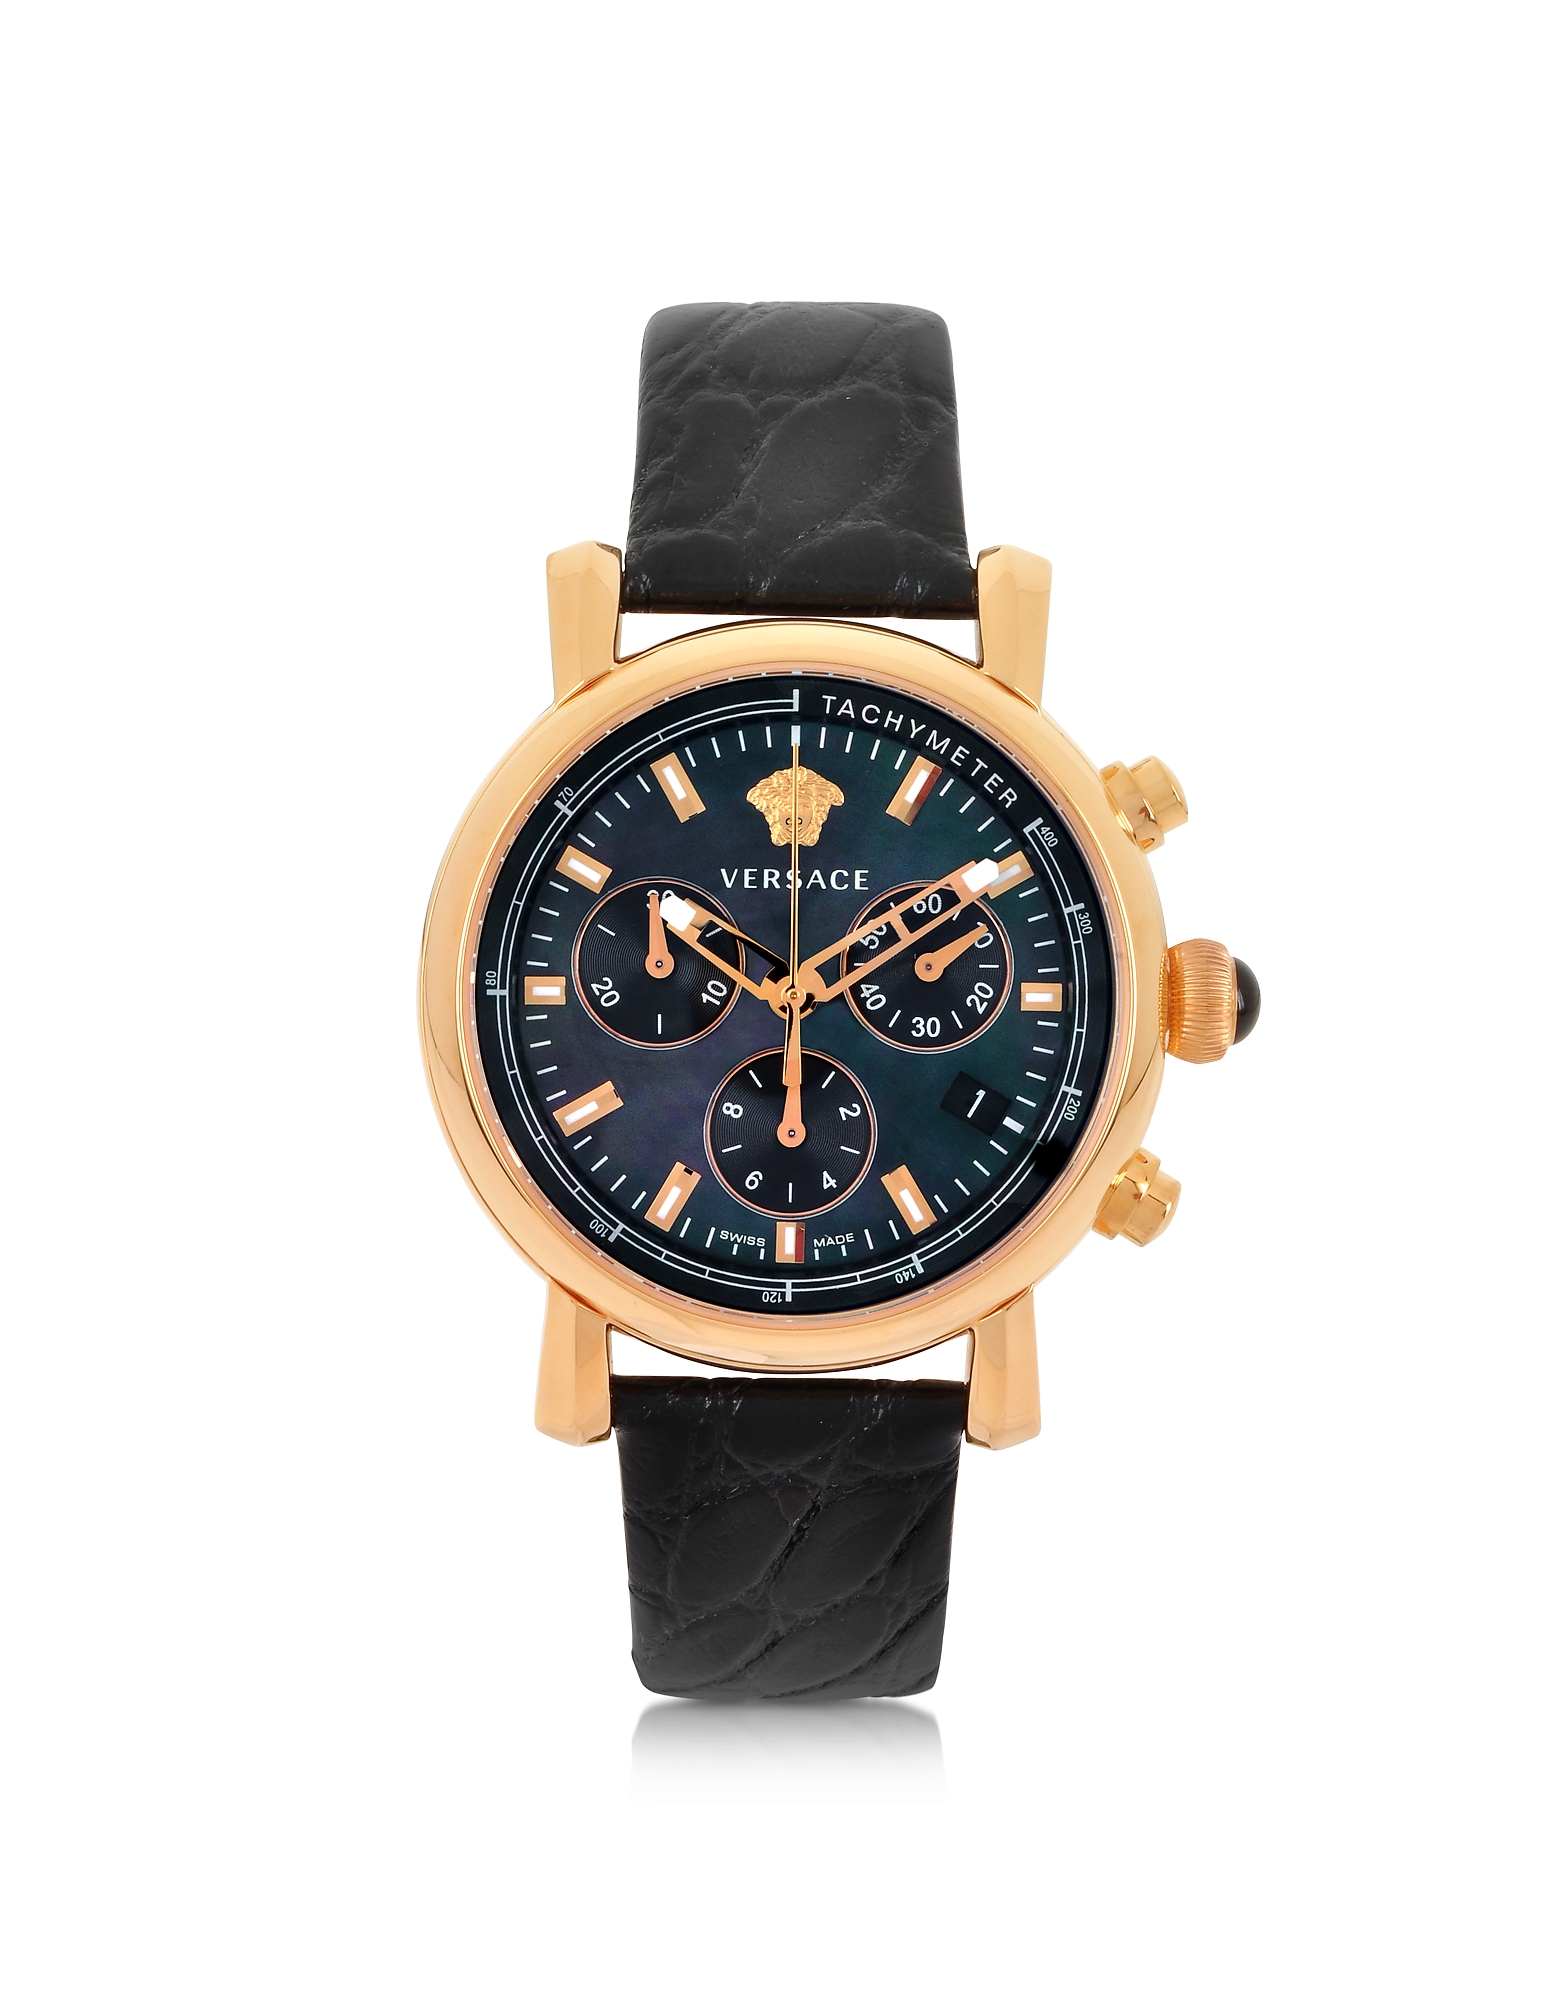 Versace Women's Watches, Black and Gold Women's Chronograph Watch